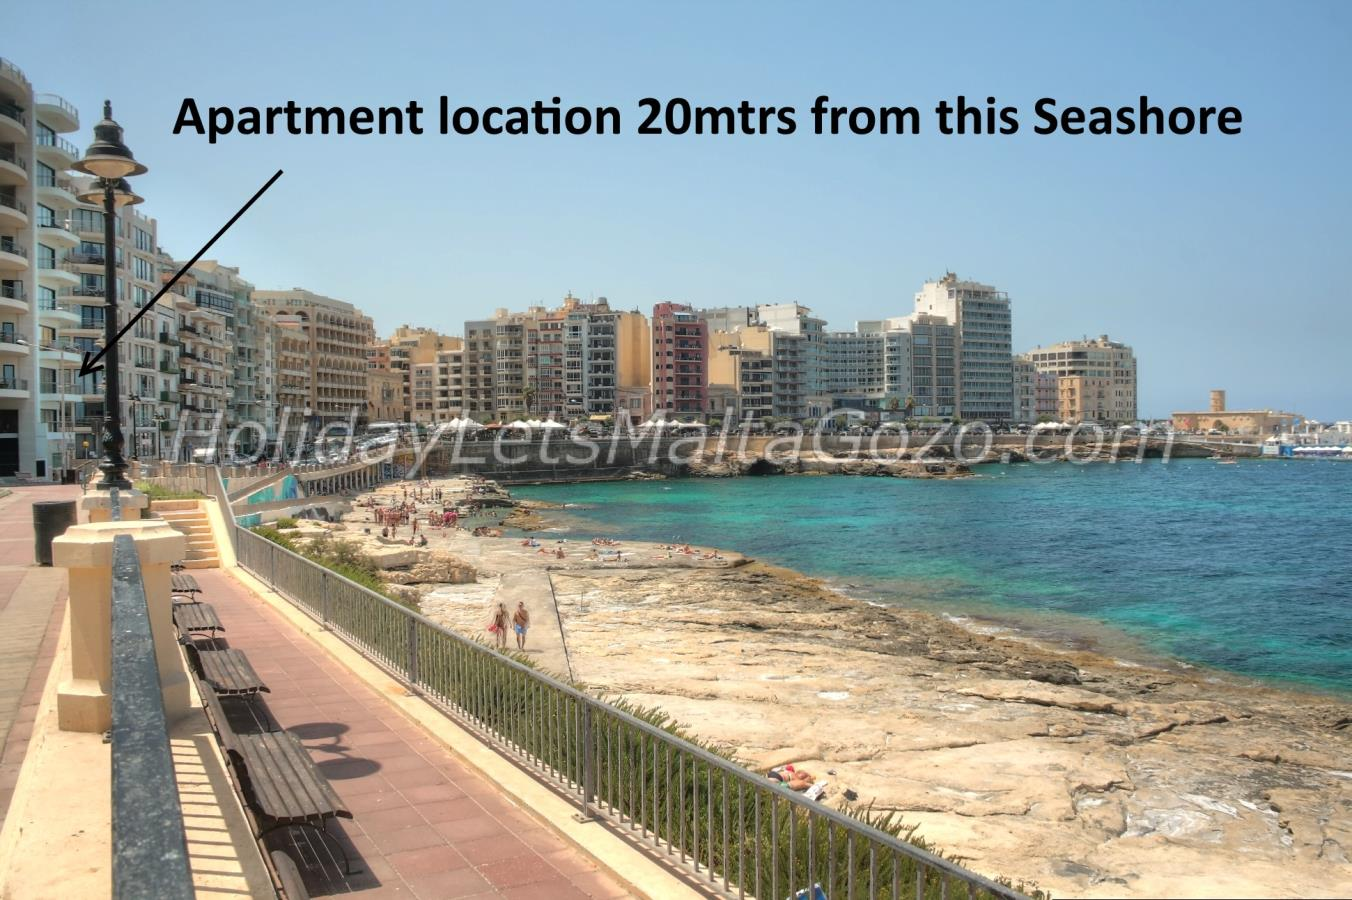 Apartment location 20mtrs from Seashore